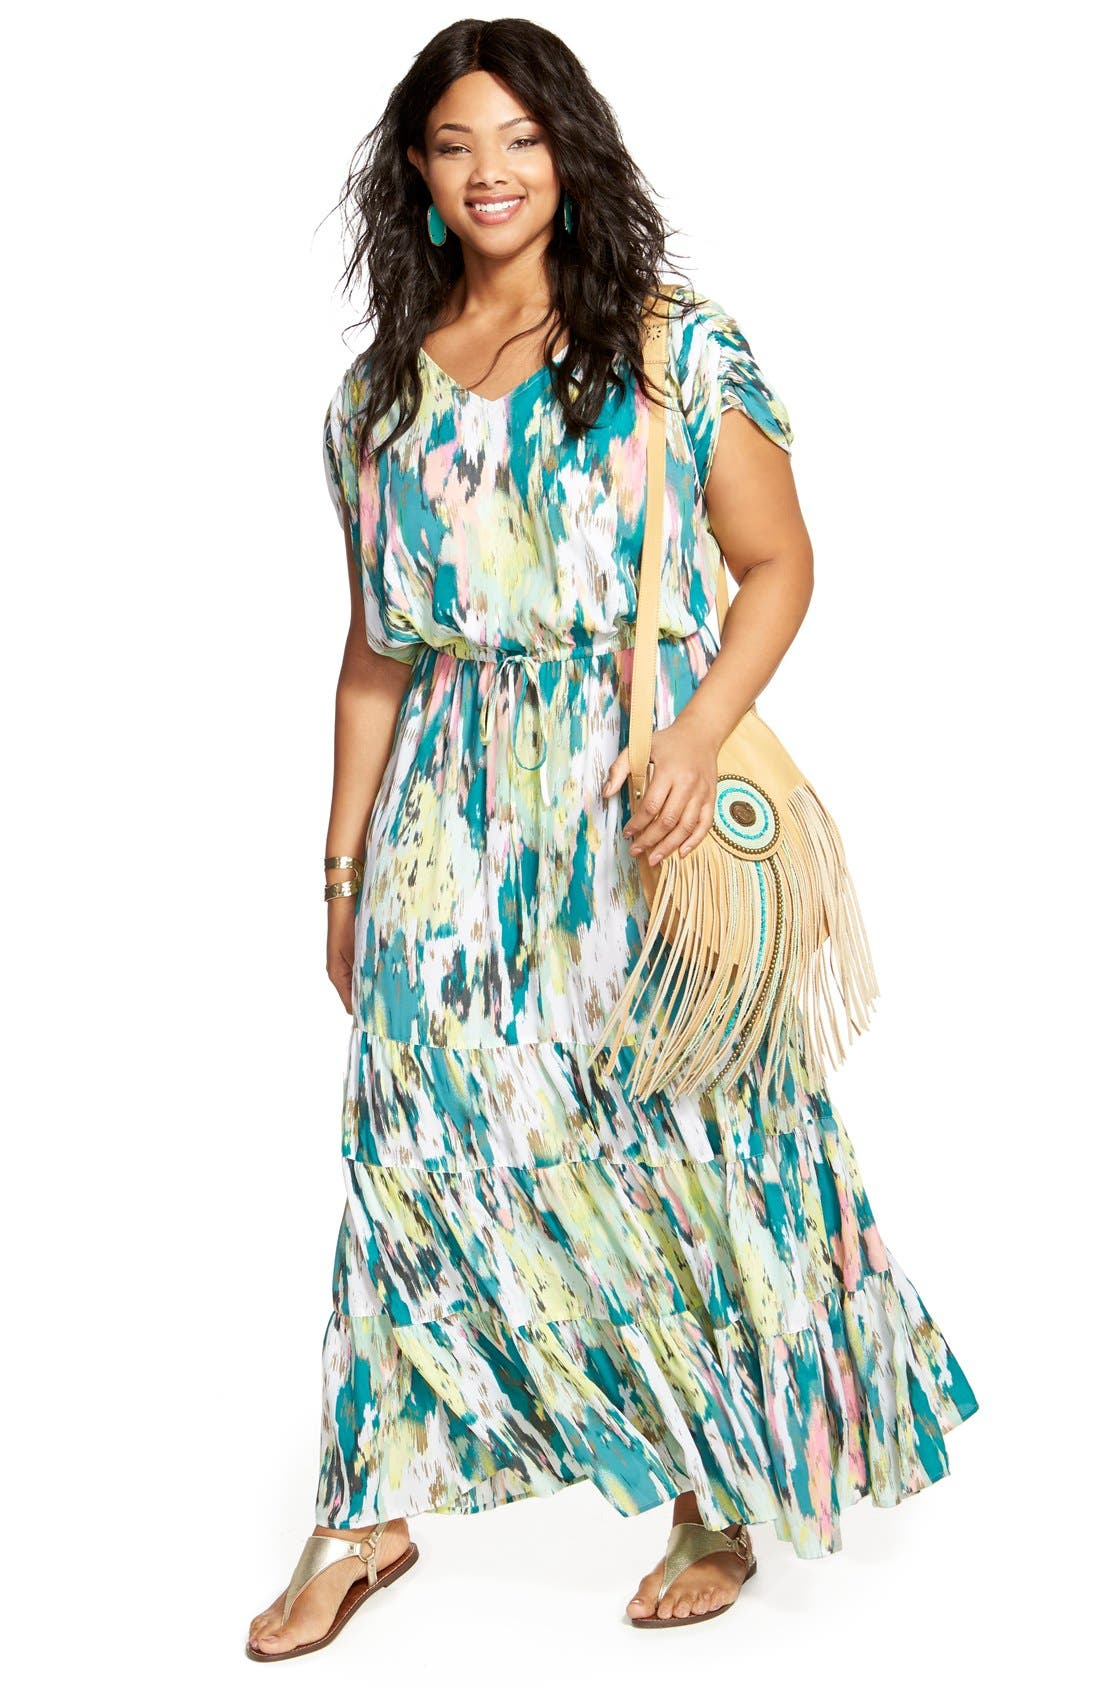 Melissa McCarthy Seven7 Maxi Dress & Accessories (Plus Size)